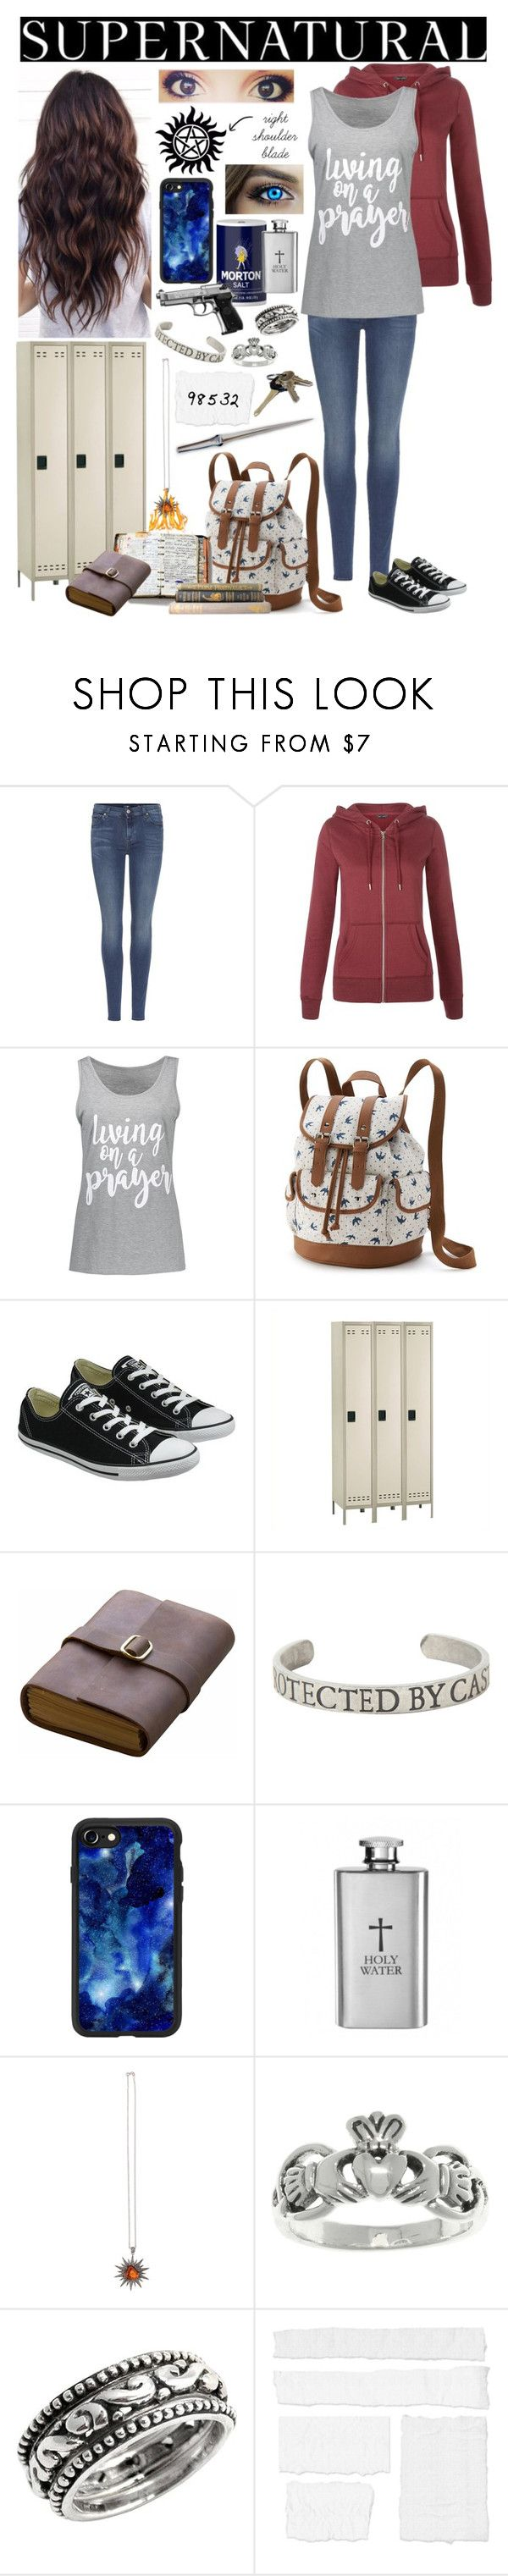 """""""Supernatural OC - a job in a school"""" by seachild41539 ❤ liked on Polyvore featuring 7 For All Mankind, New Look, Candie's, Converse, Safco, Peek, Rear View Prints, Hot Topic, Casetify and Colette Jewelry"""